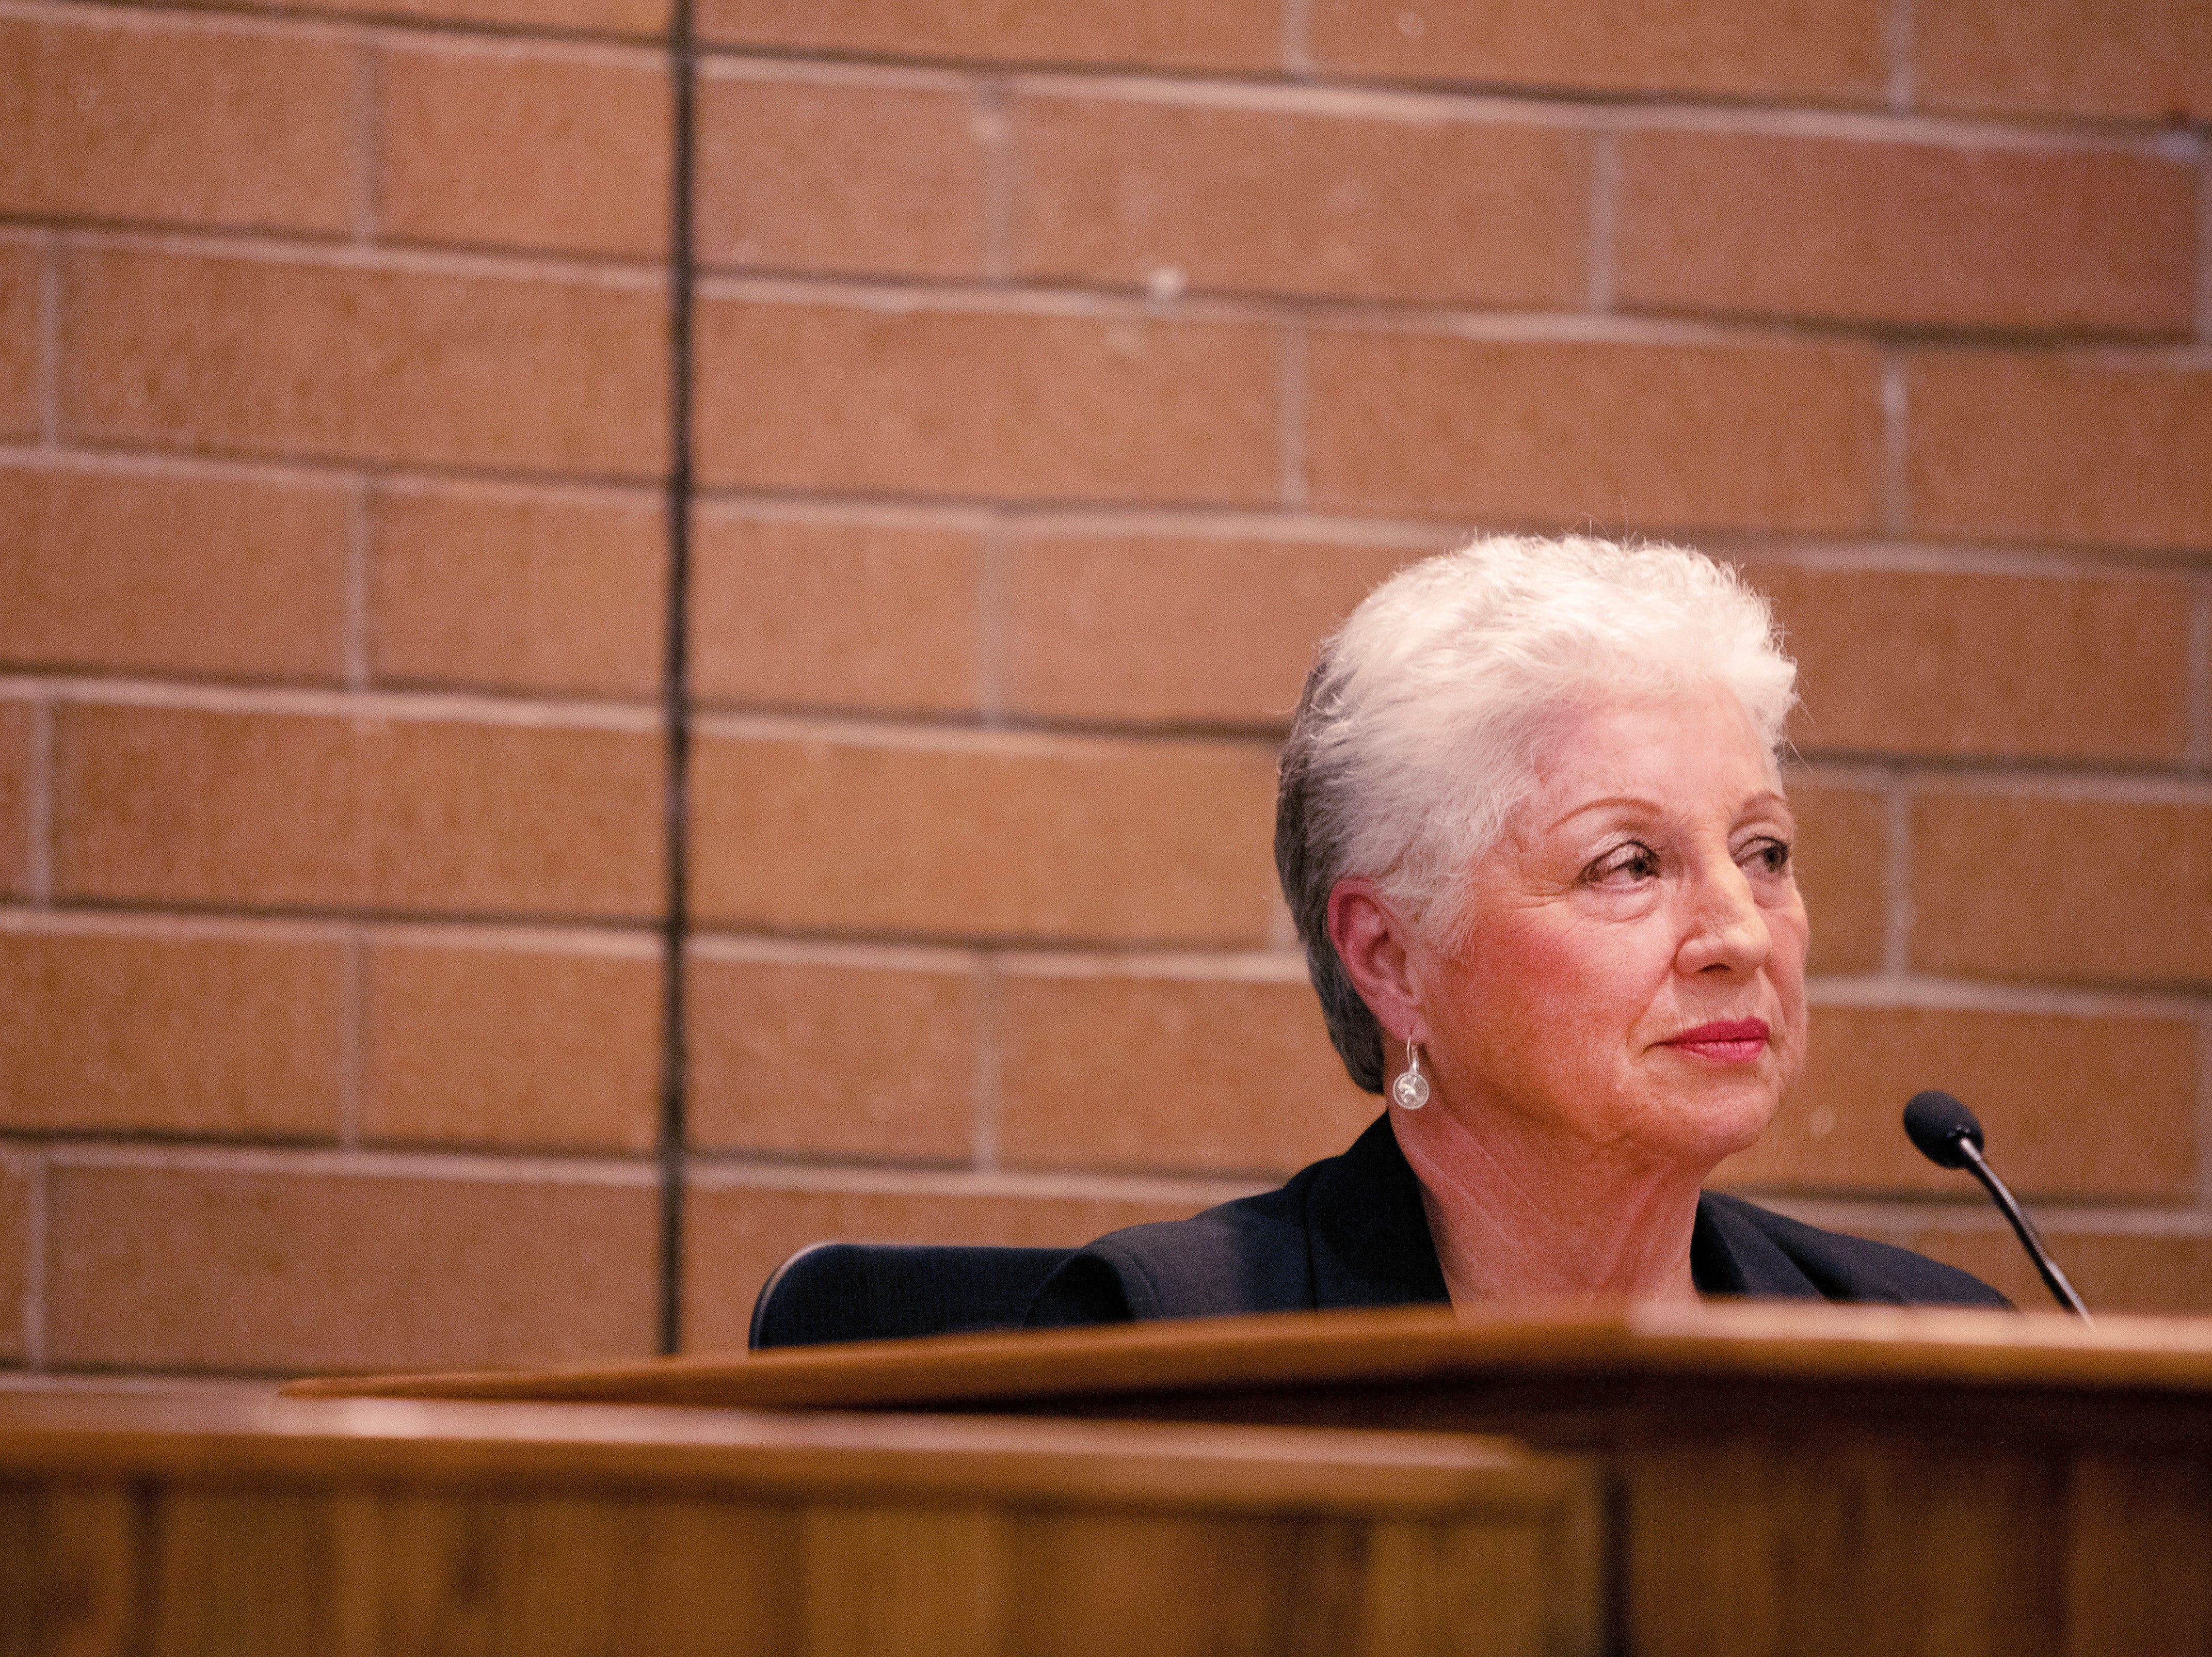 City Council member Susan Gutowsky participates in the candidate forum hosted by The League of  Women Voters of Larimer County at City Hall on March 6.